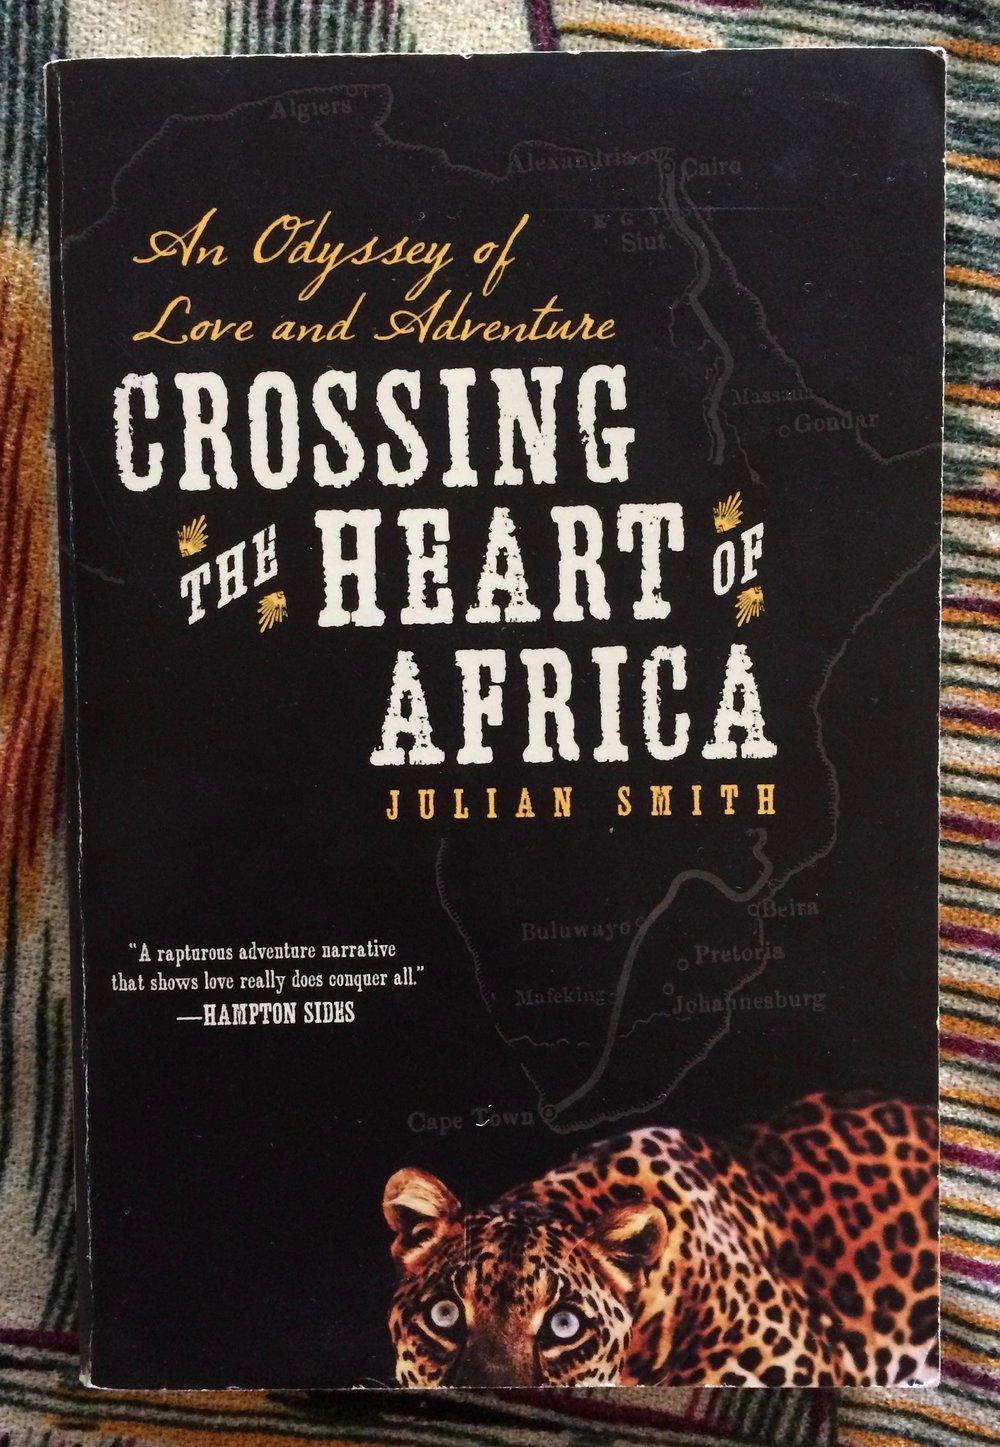 Reads For The Road: Crossing the Heart of Africa by Julian Smith